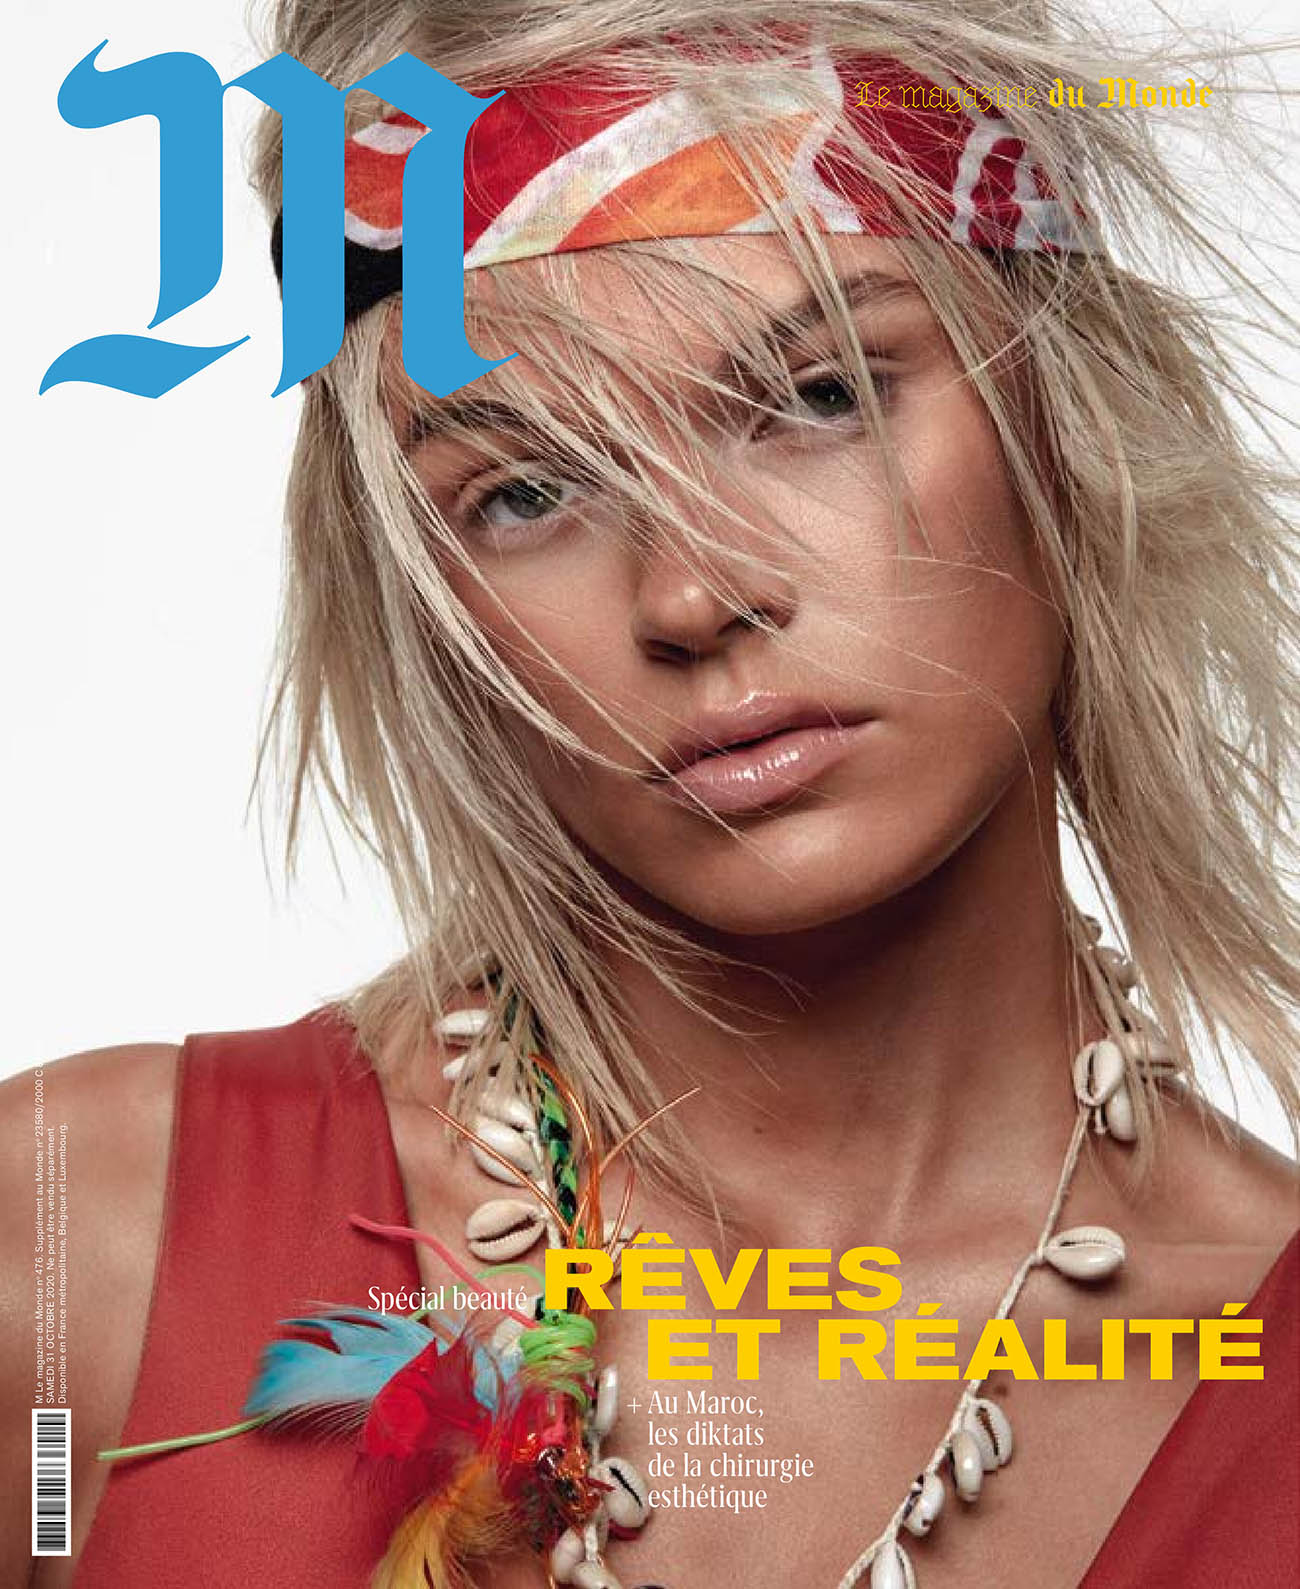 Cara Taylor covers M Le magazine du Monde October 31st, 2020 by Julien Martinez Leclerc